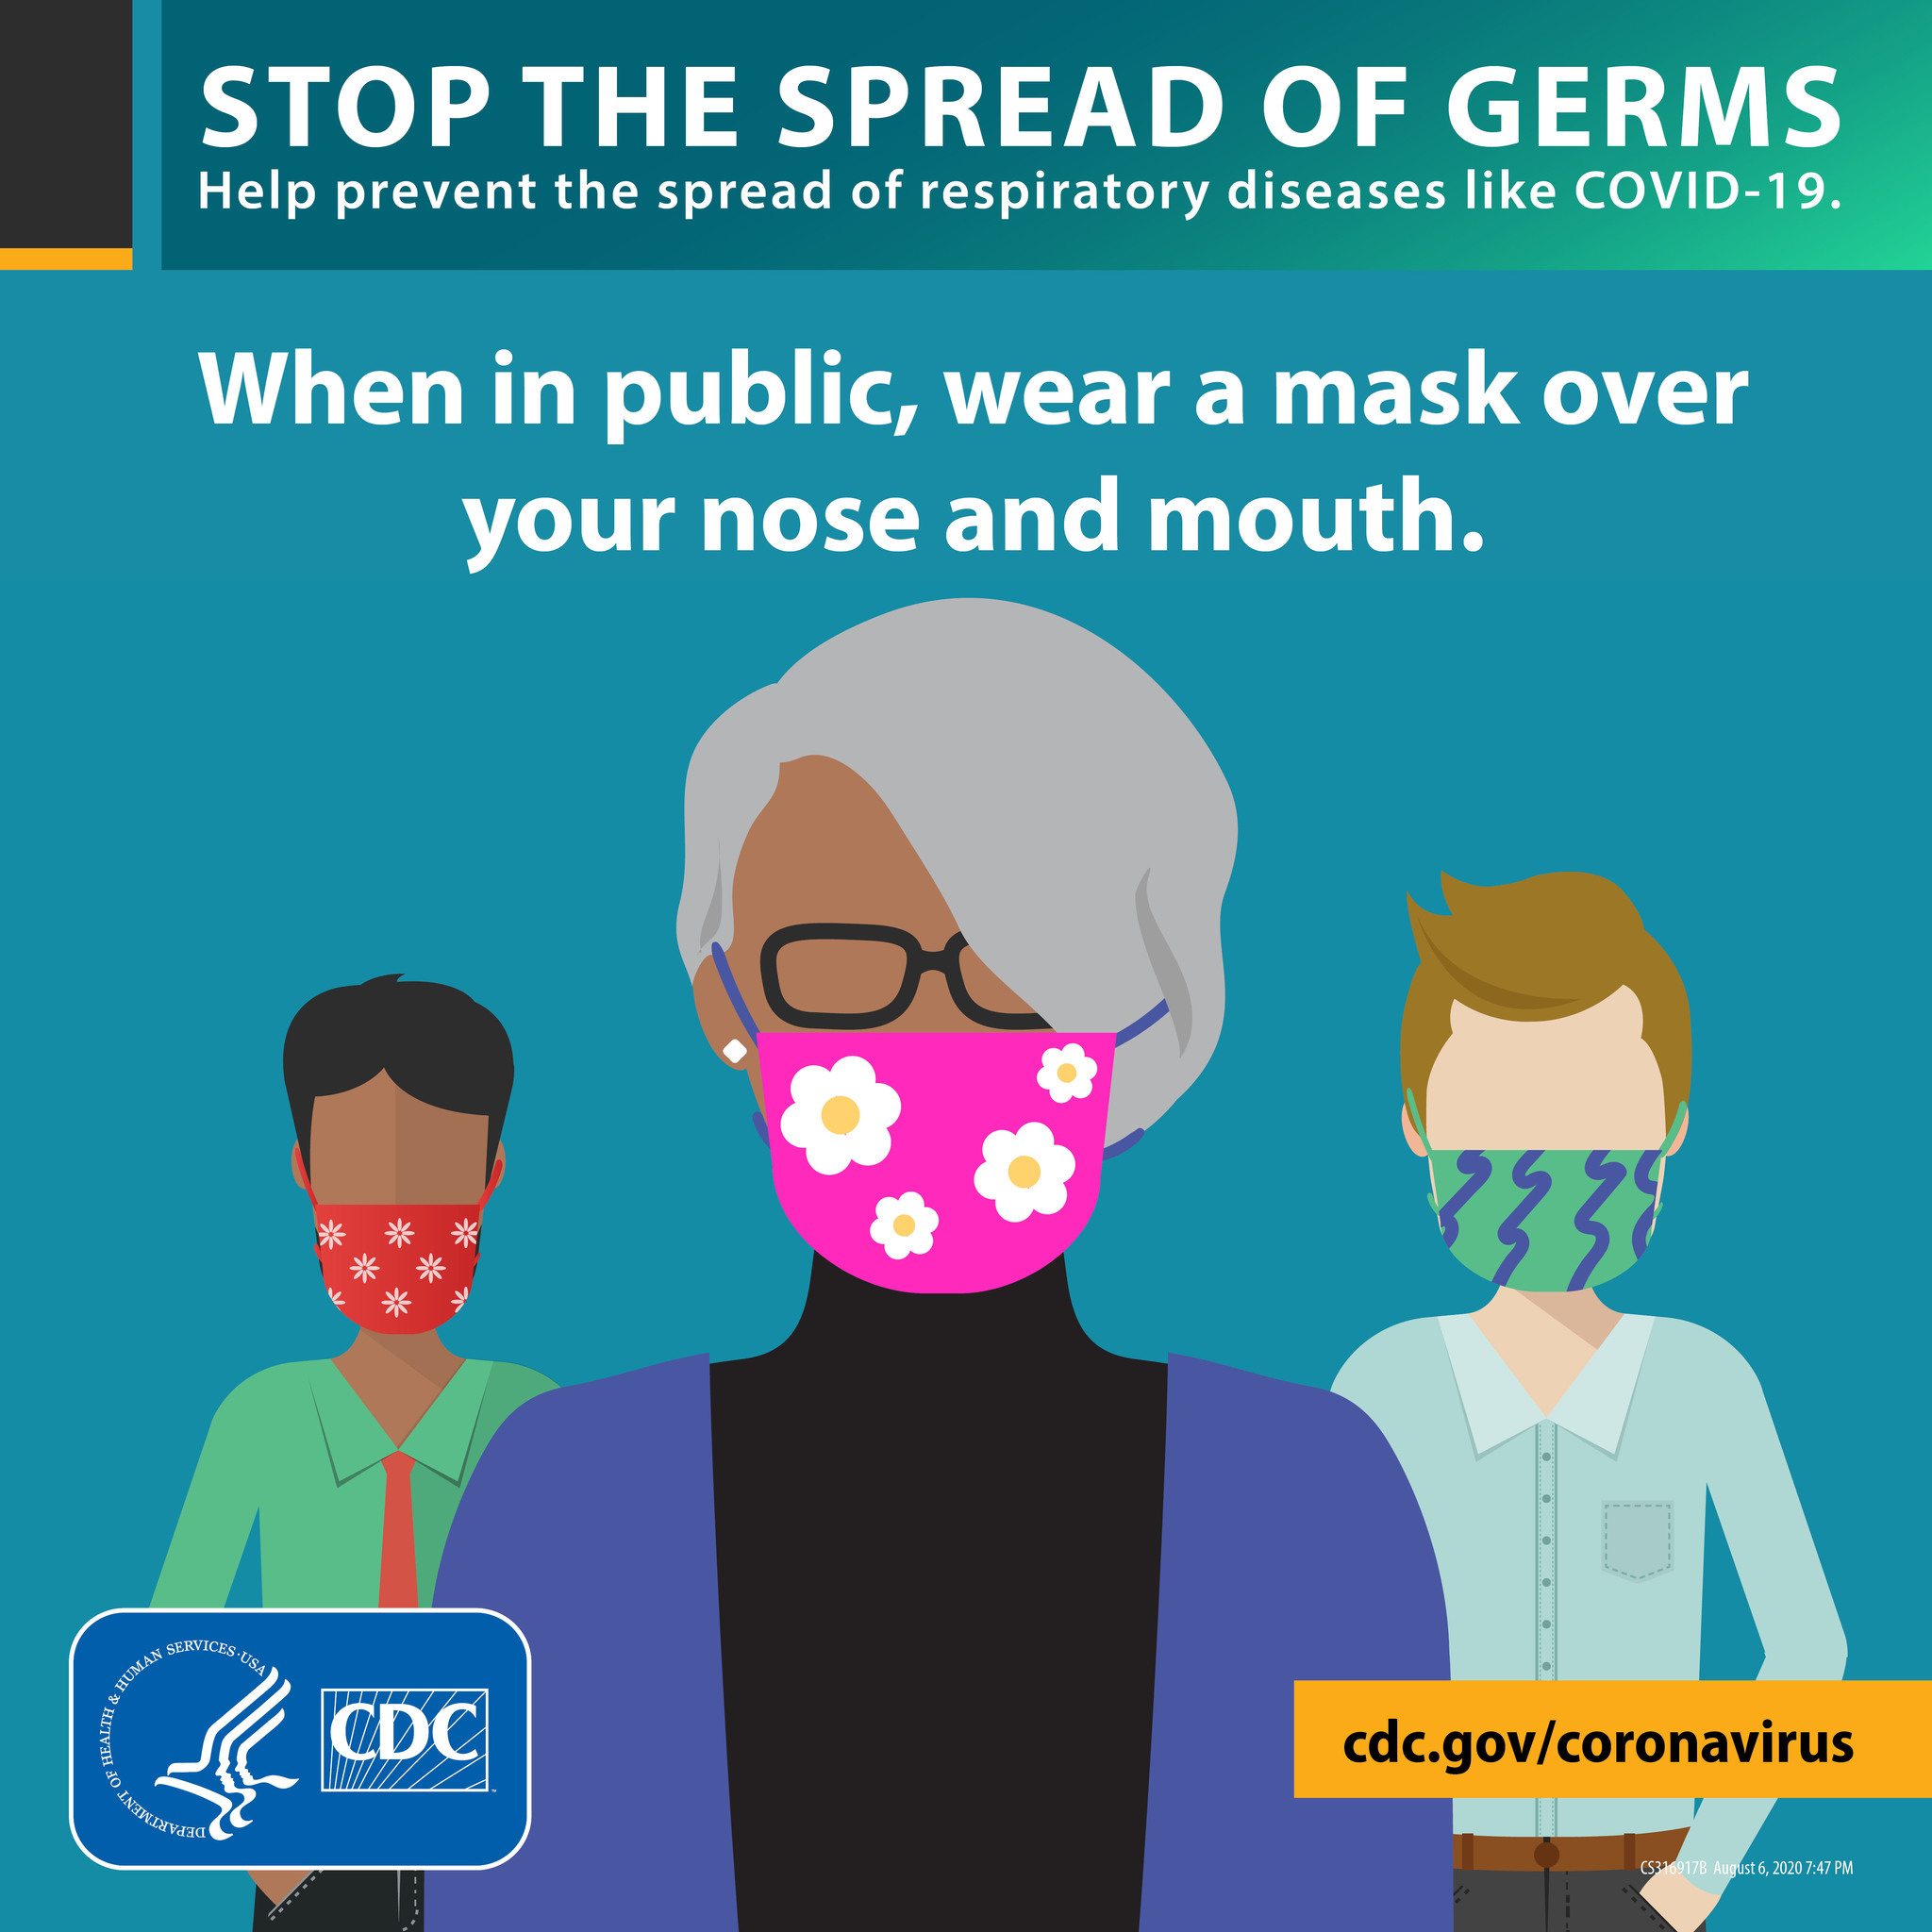 Stop the spread of germs: when in public, wear a mask.